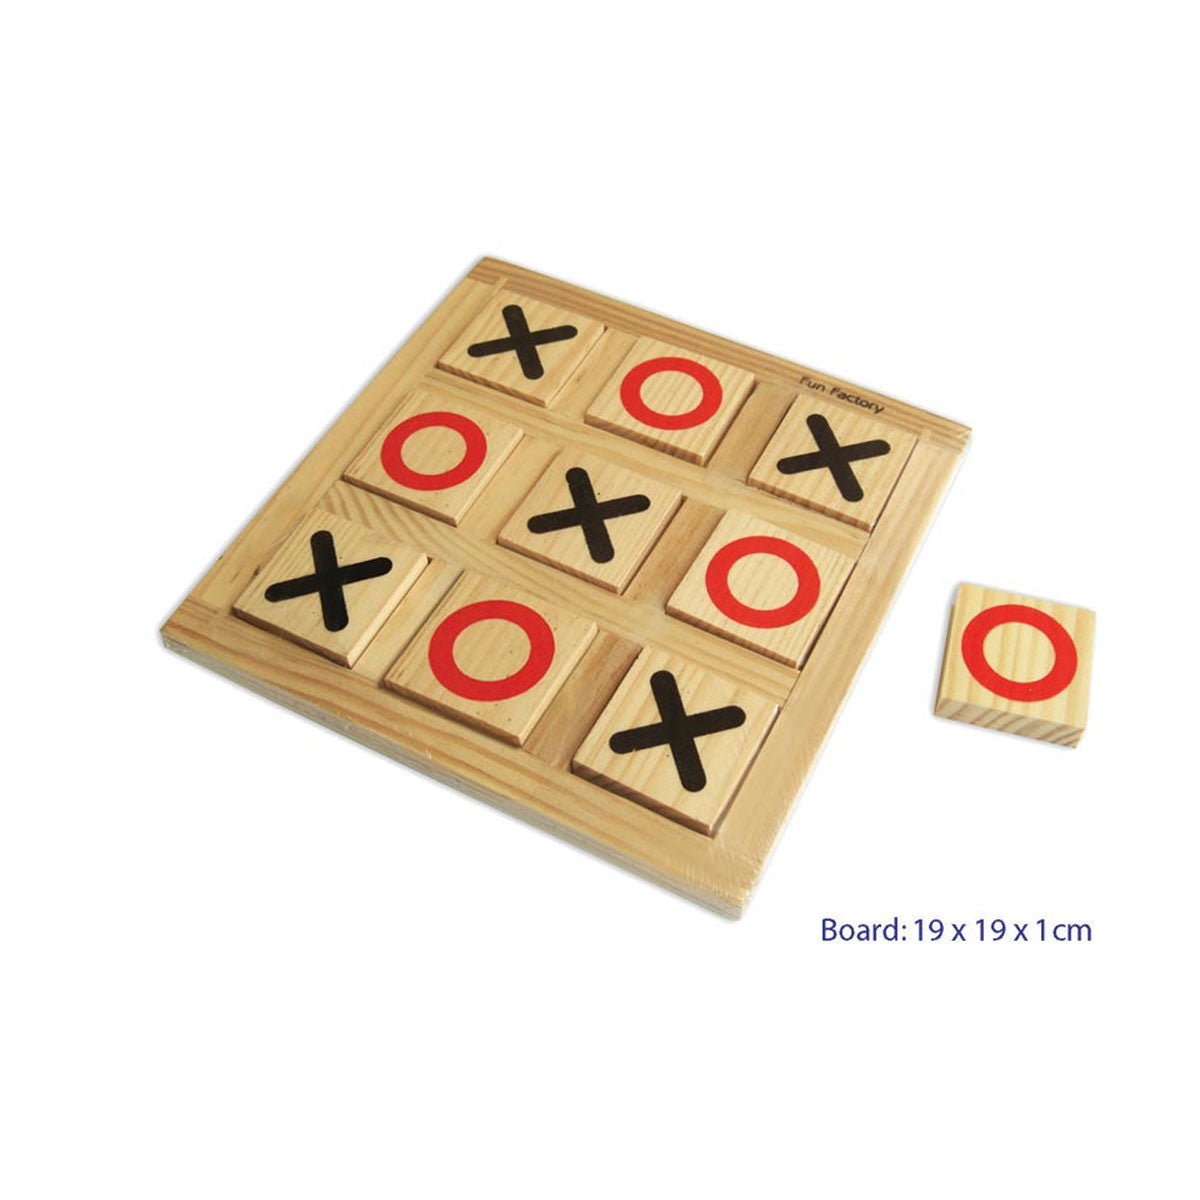 Wooden Noughts and Crosses Board Game Fun Factory Games at Little Earth Nest Eco Shop